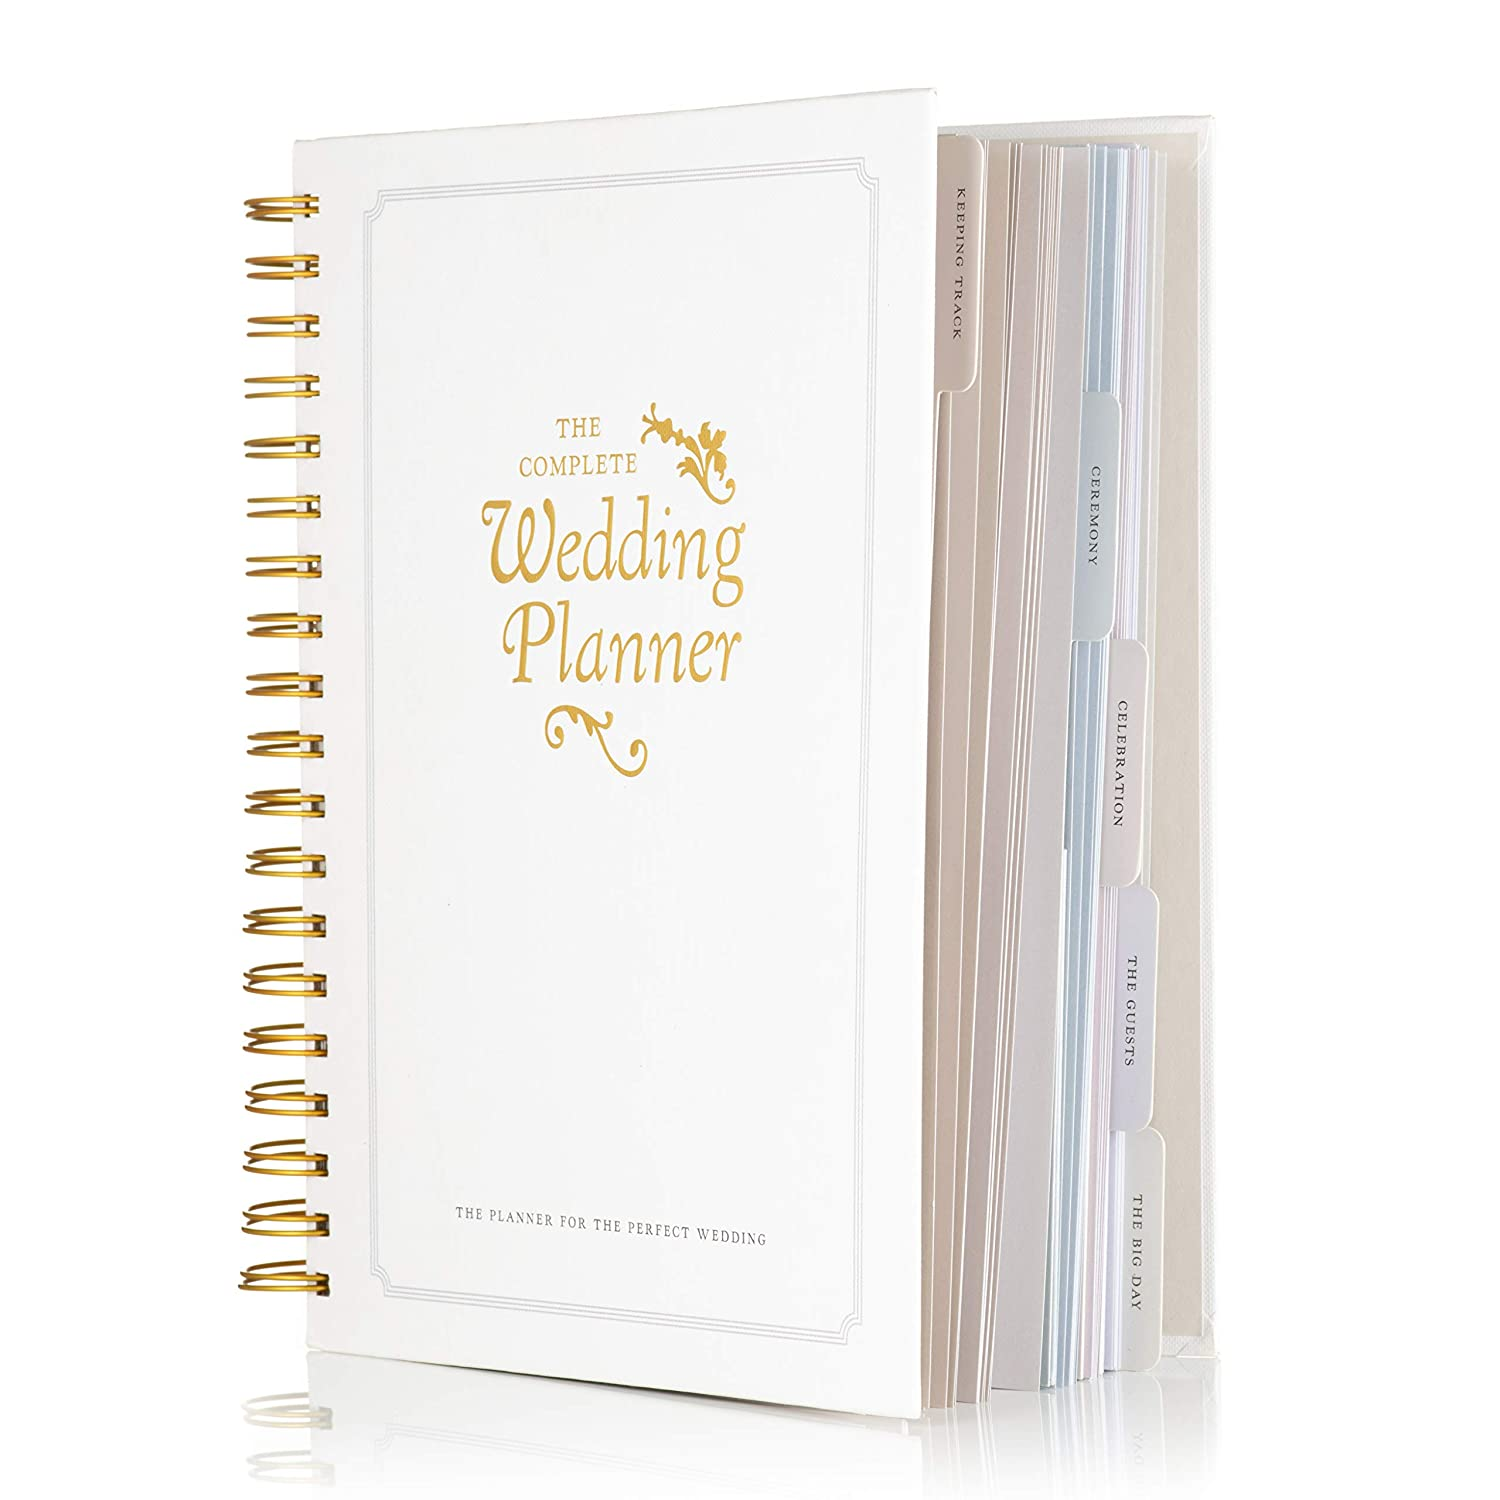 Wedding Planning Book.The Complete Wedding Planner Book And Organiser By Dayworks The Perfect Engagement Gift Includes Checklists Pockets Much More To Help Organise The